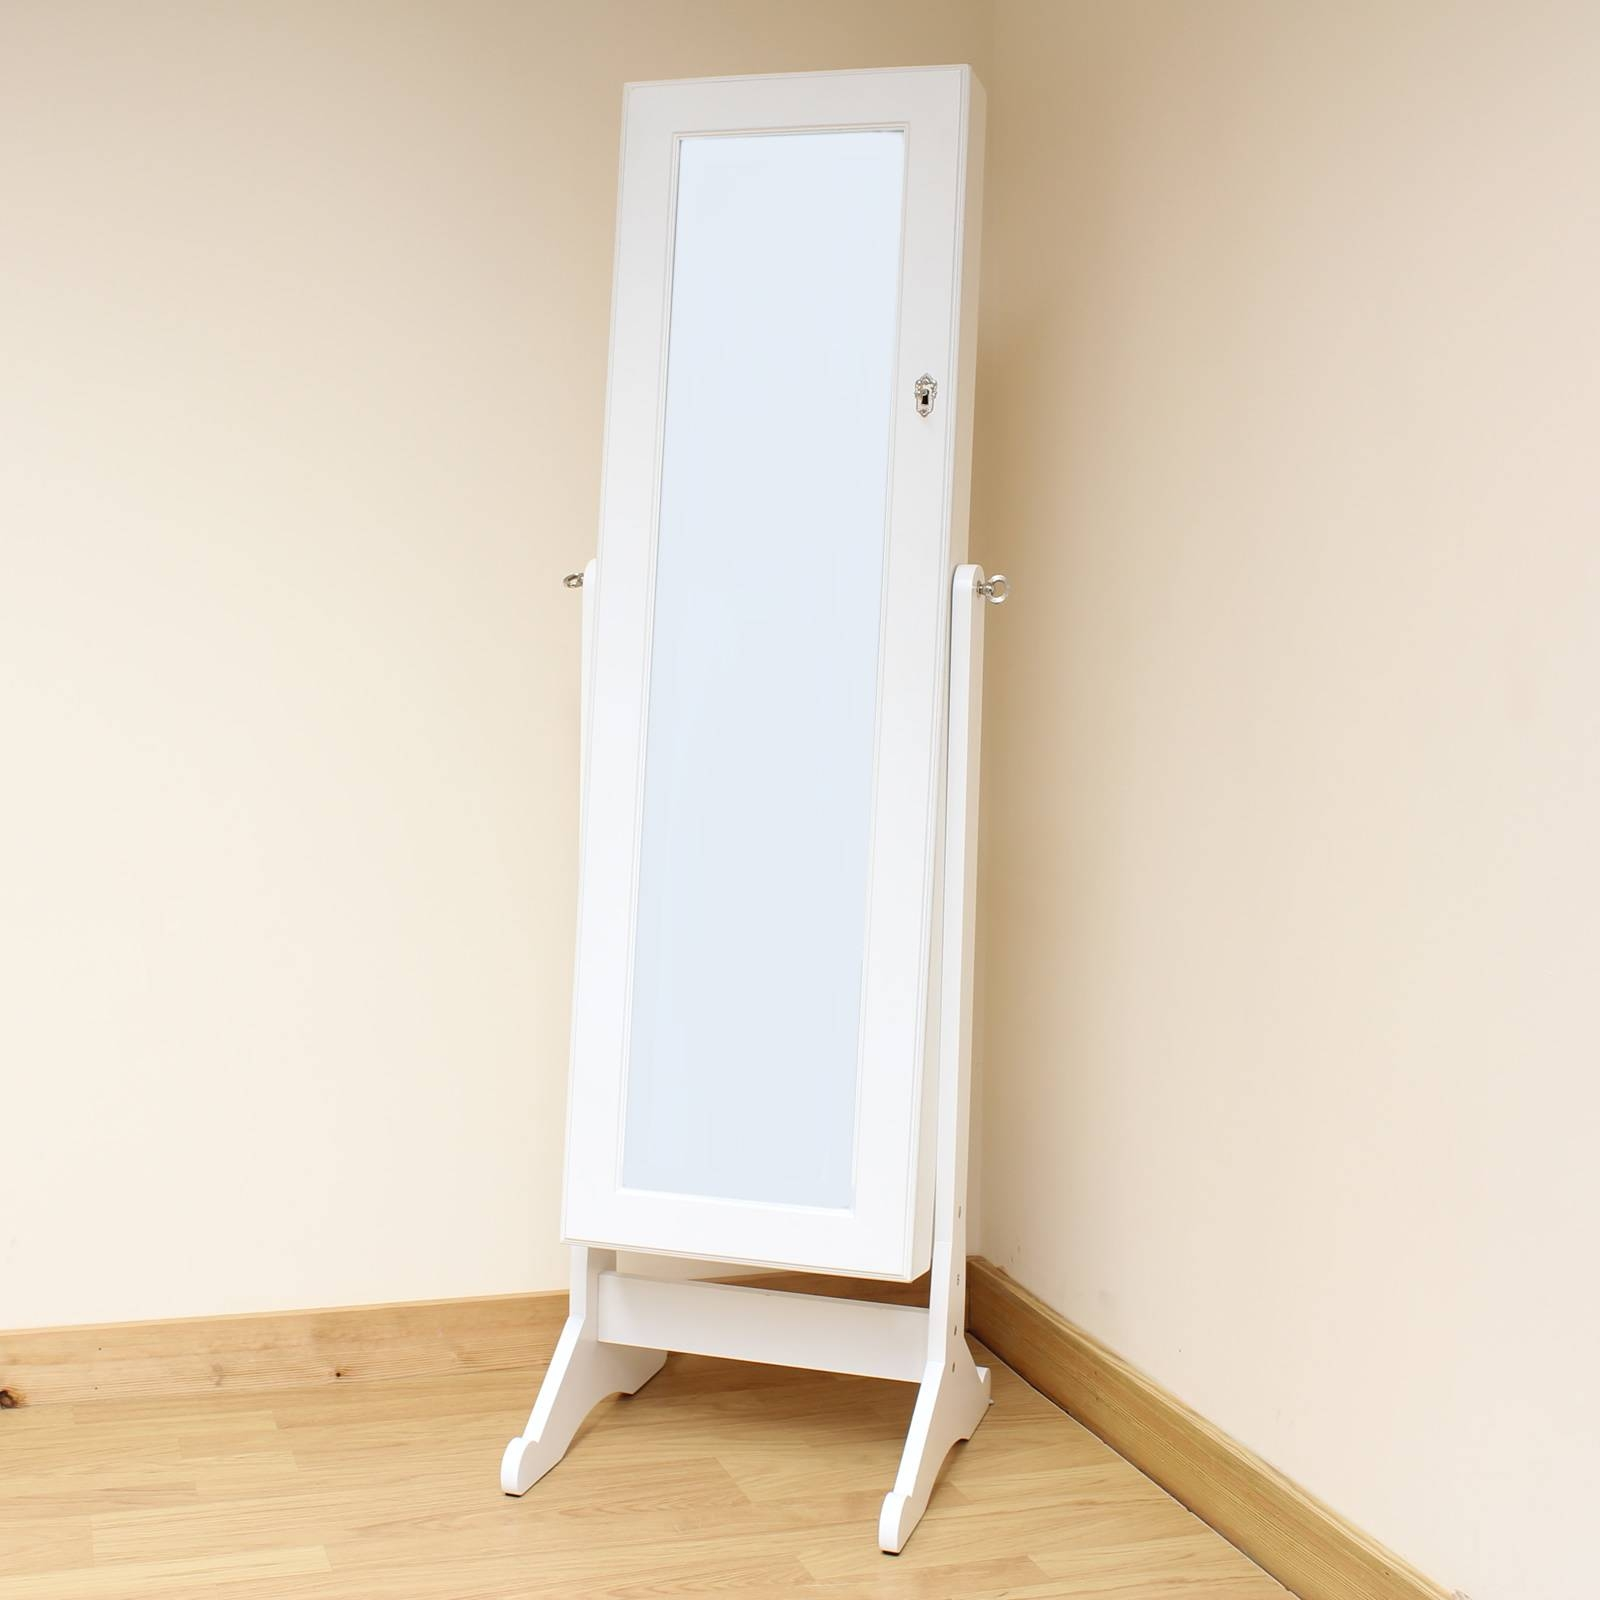 Mirrors. Amazing White Standing Mirror: White-Standing-Mirror-Free inside Full Length Stand Alone Mirrors (Image 10 of 15)